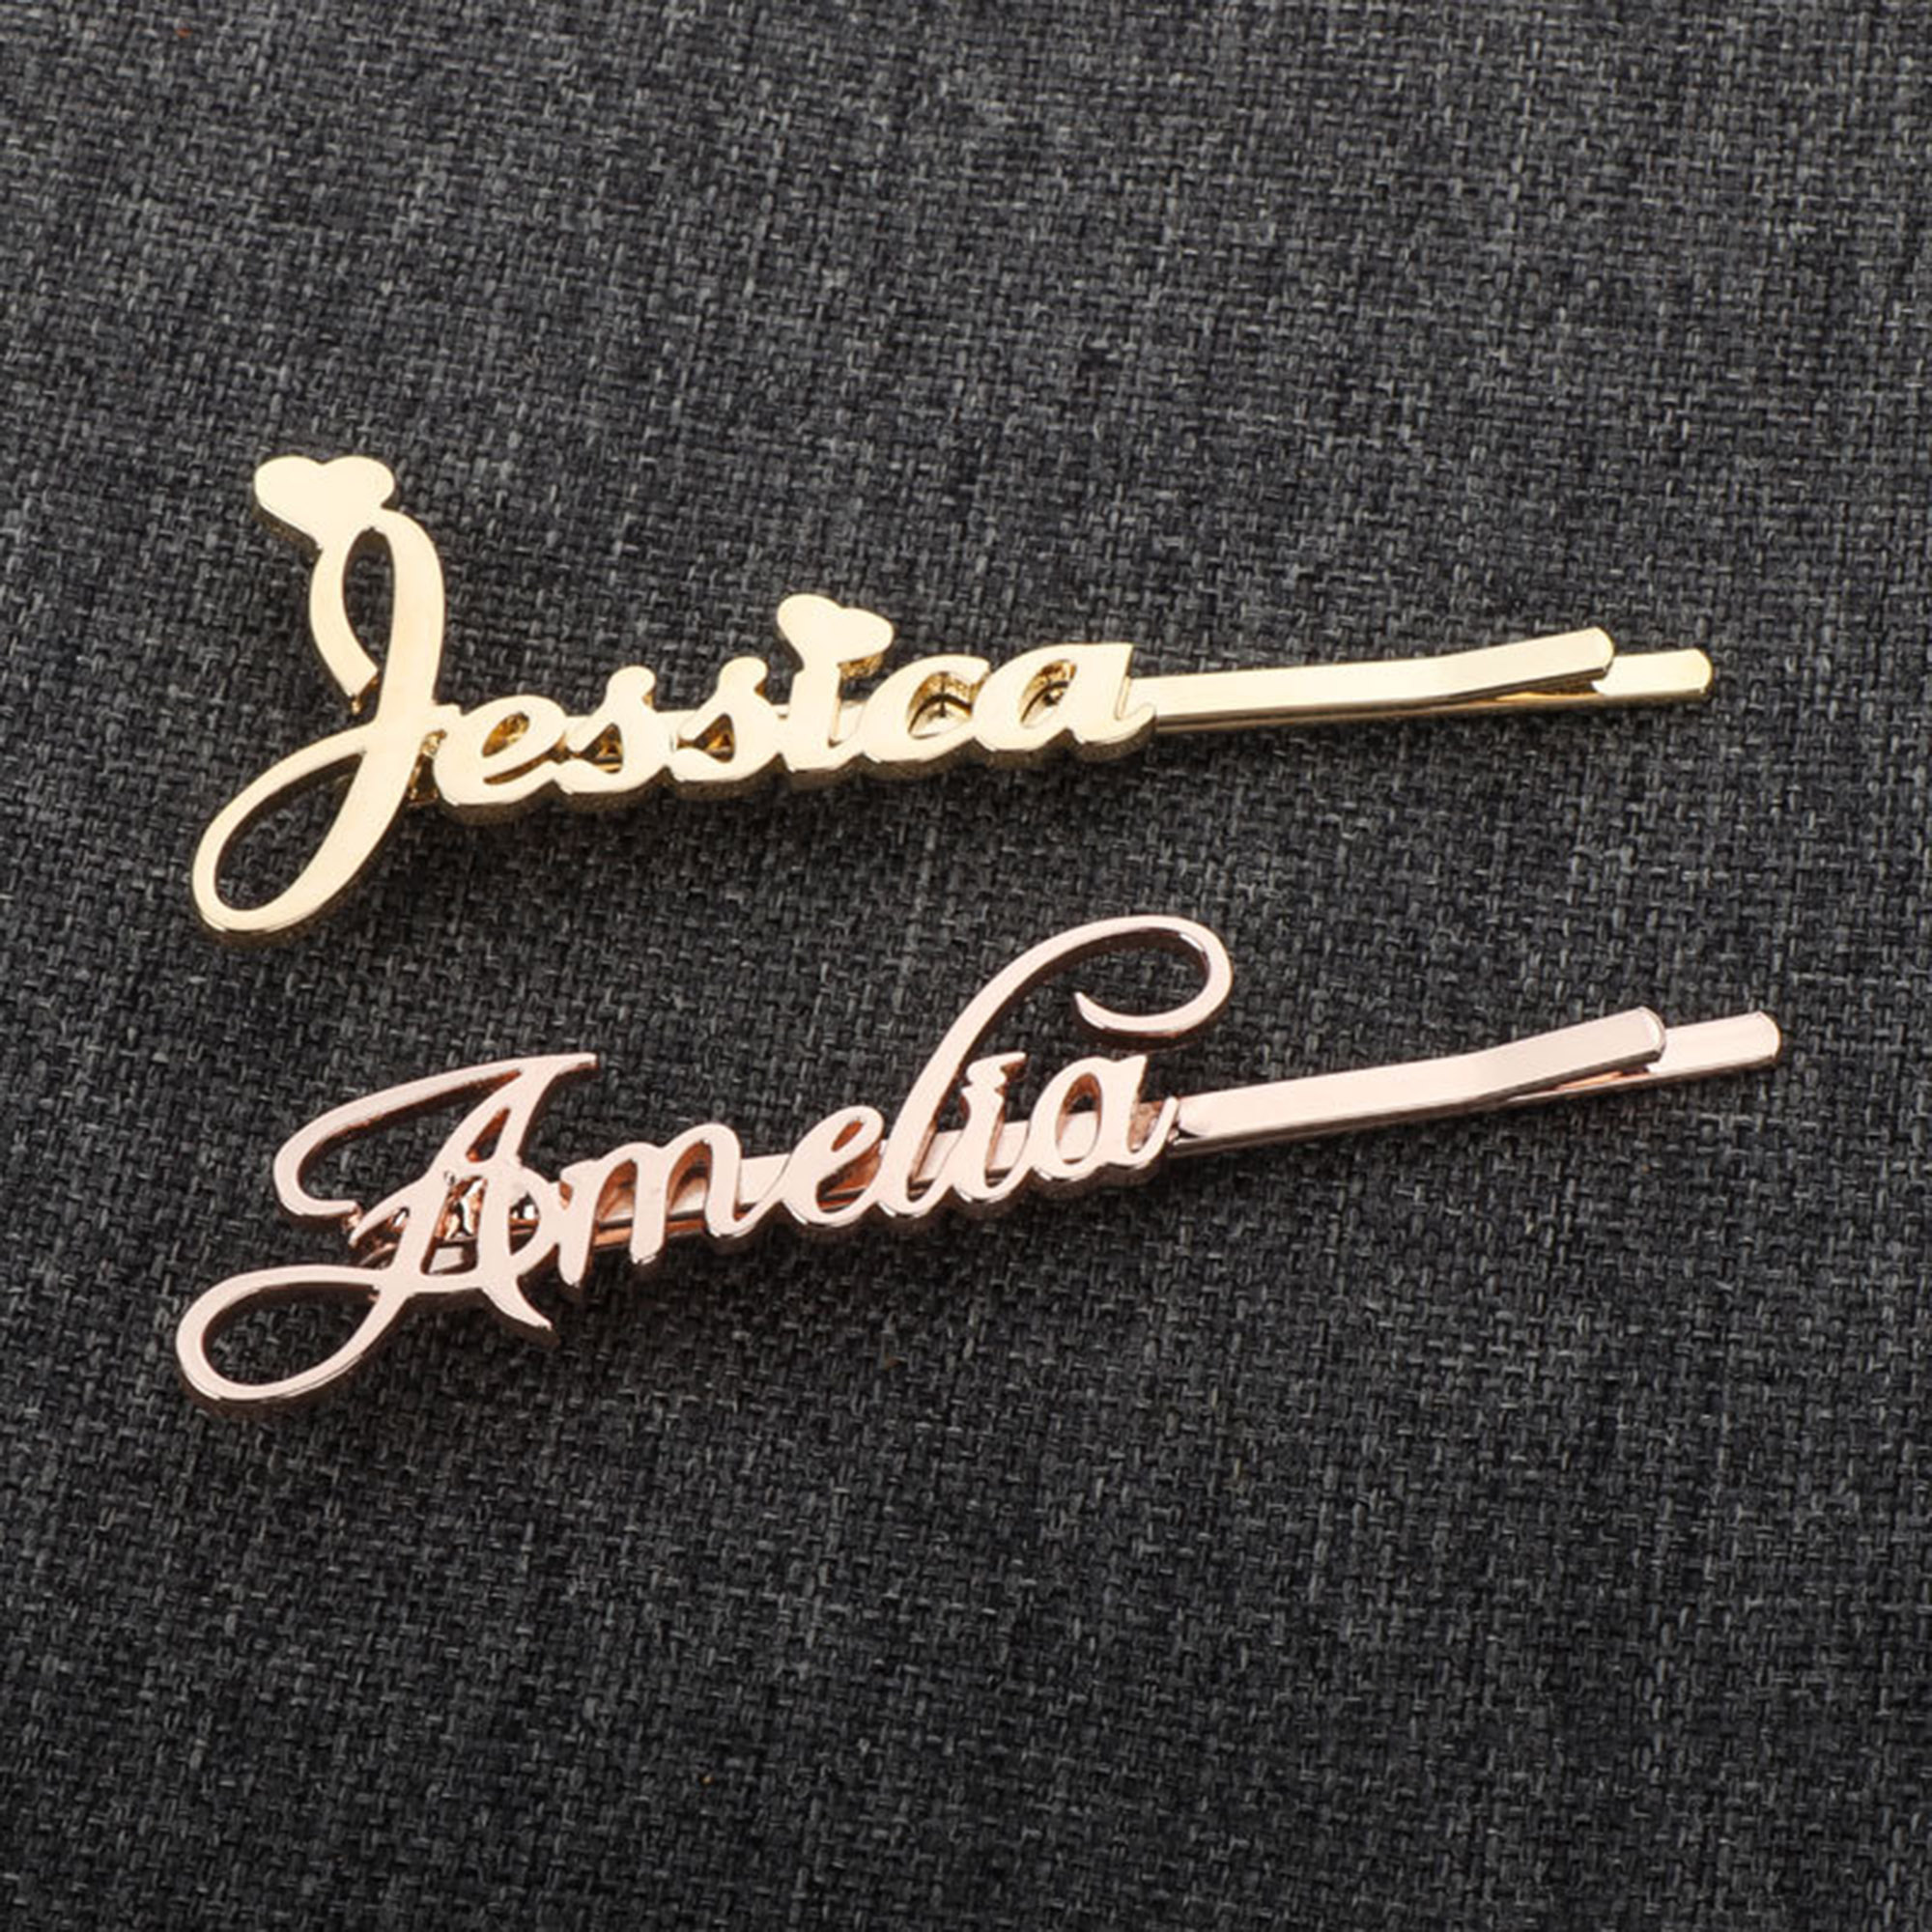 lovty Stainless Steel Silver & Gold Colors Personalised Letter Hair Pin Hairpins Accessories For Women Private Custom Jewelry